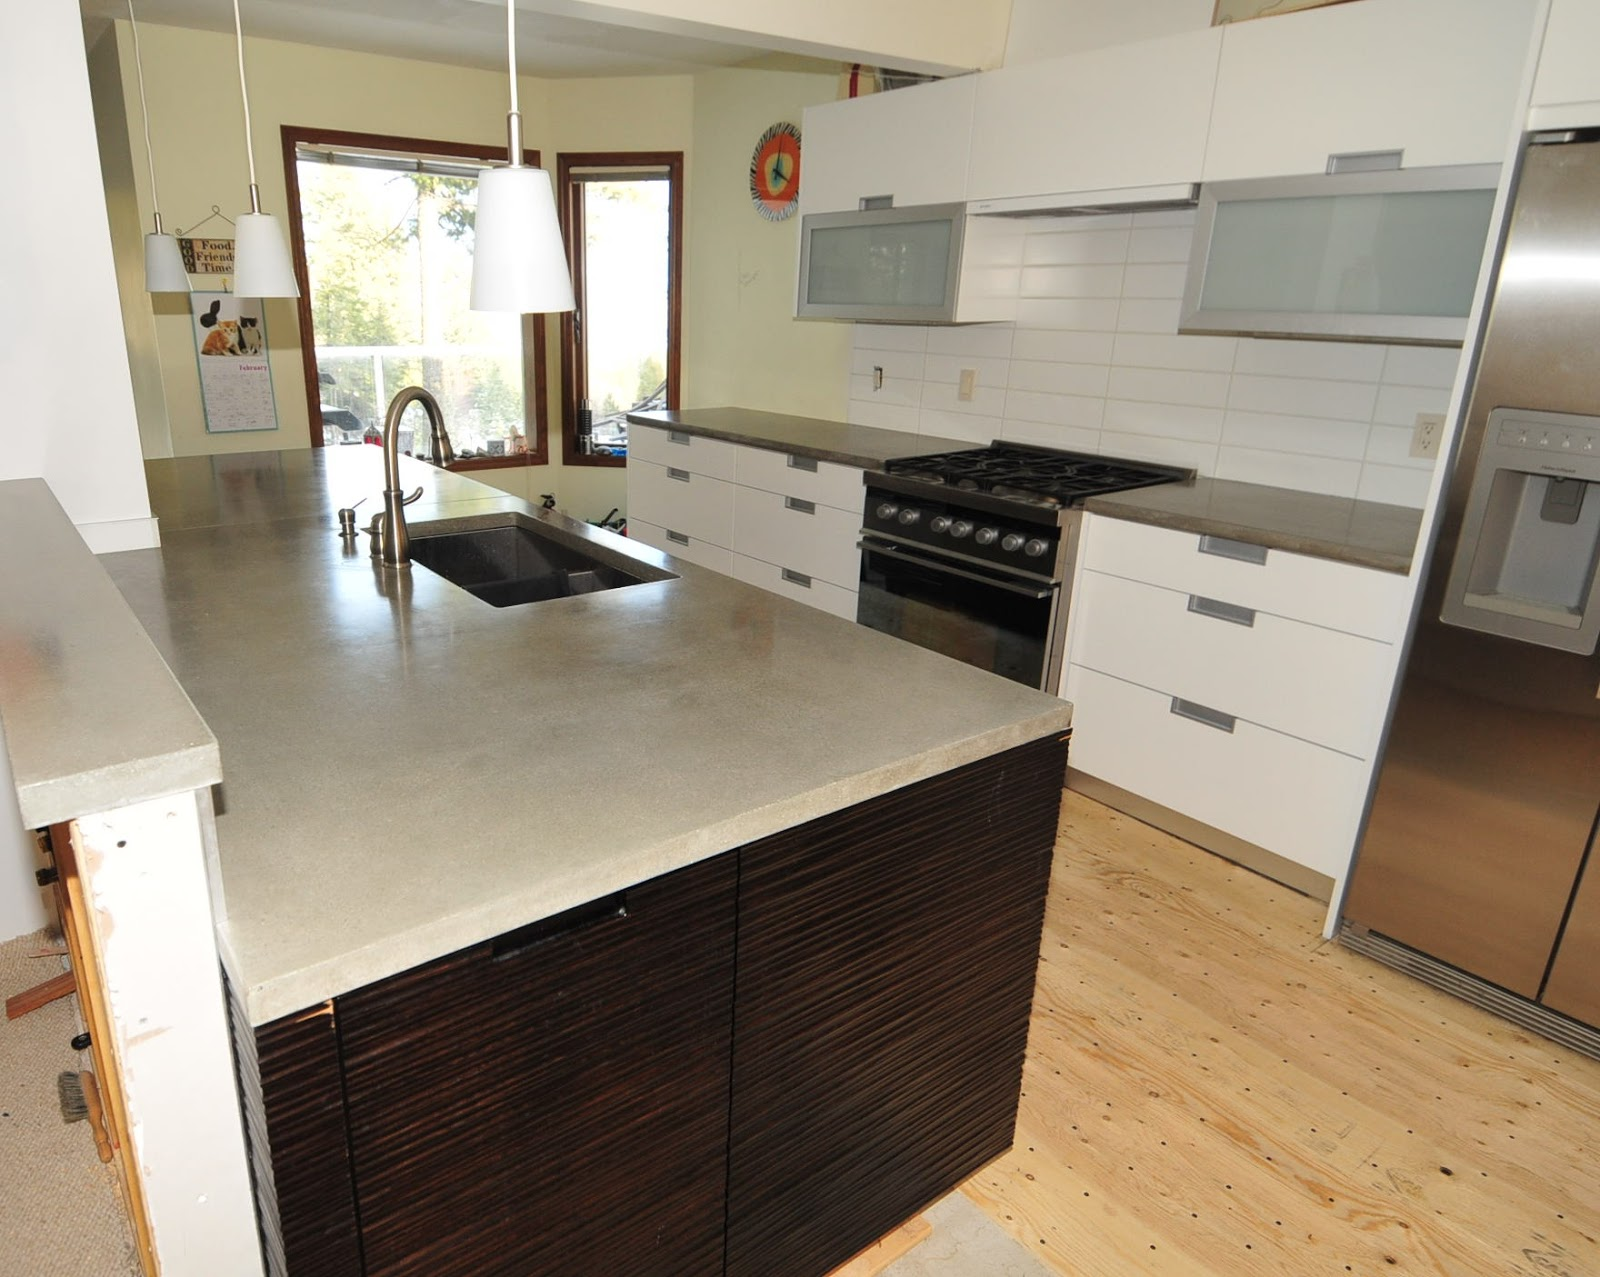 Concrete Kitchen Countertops Cupboards Lights Mode Ultra Chic And Modern